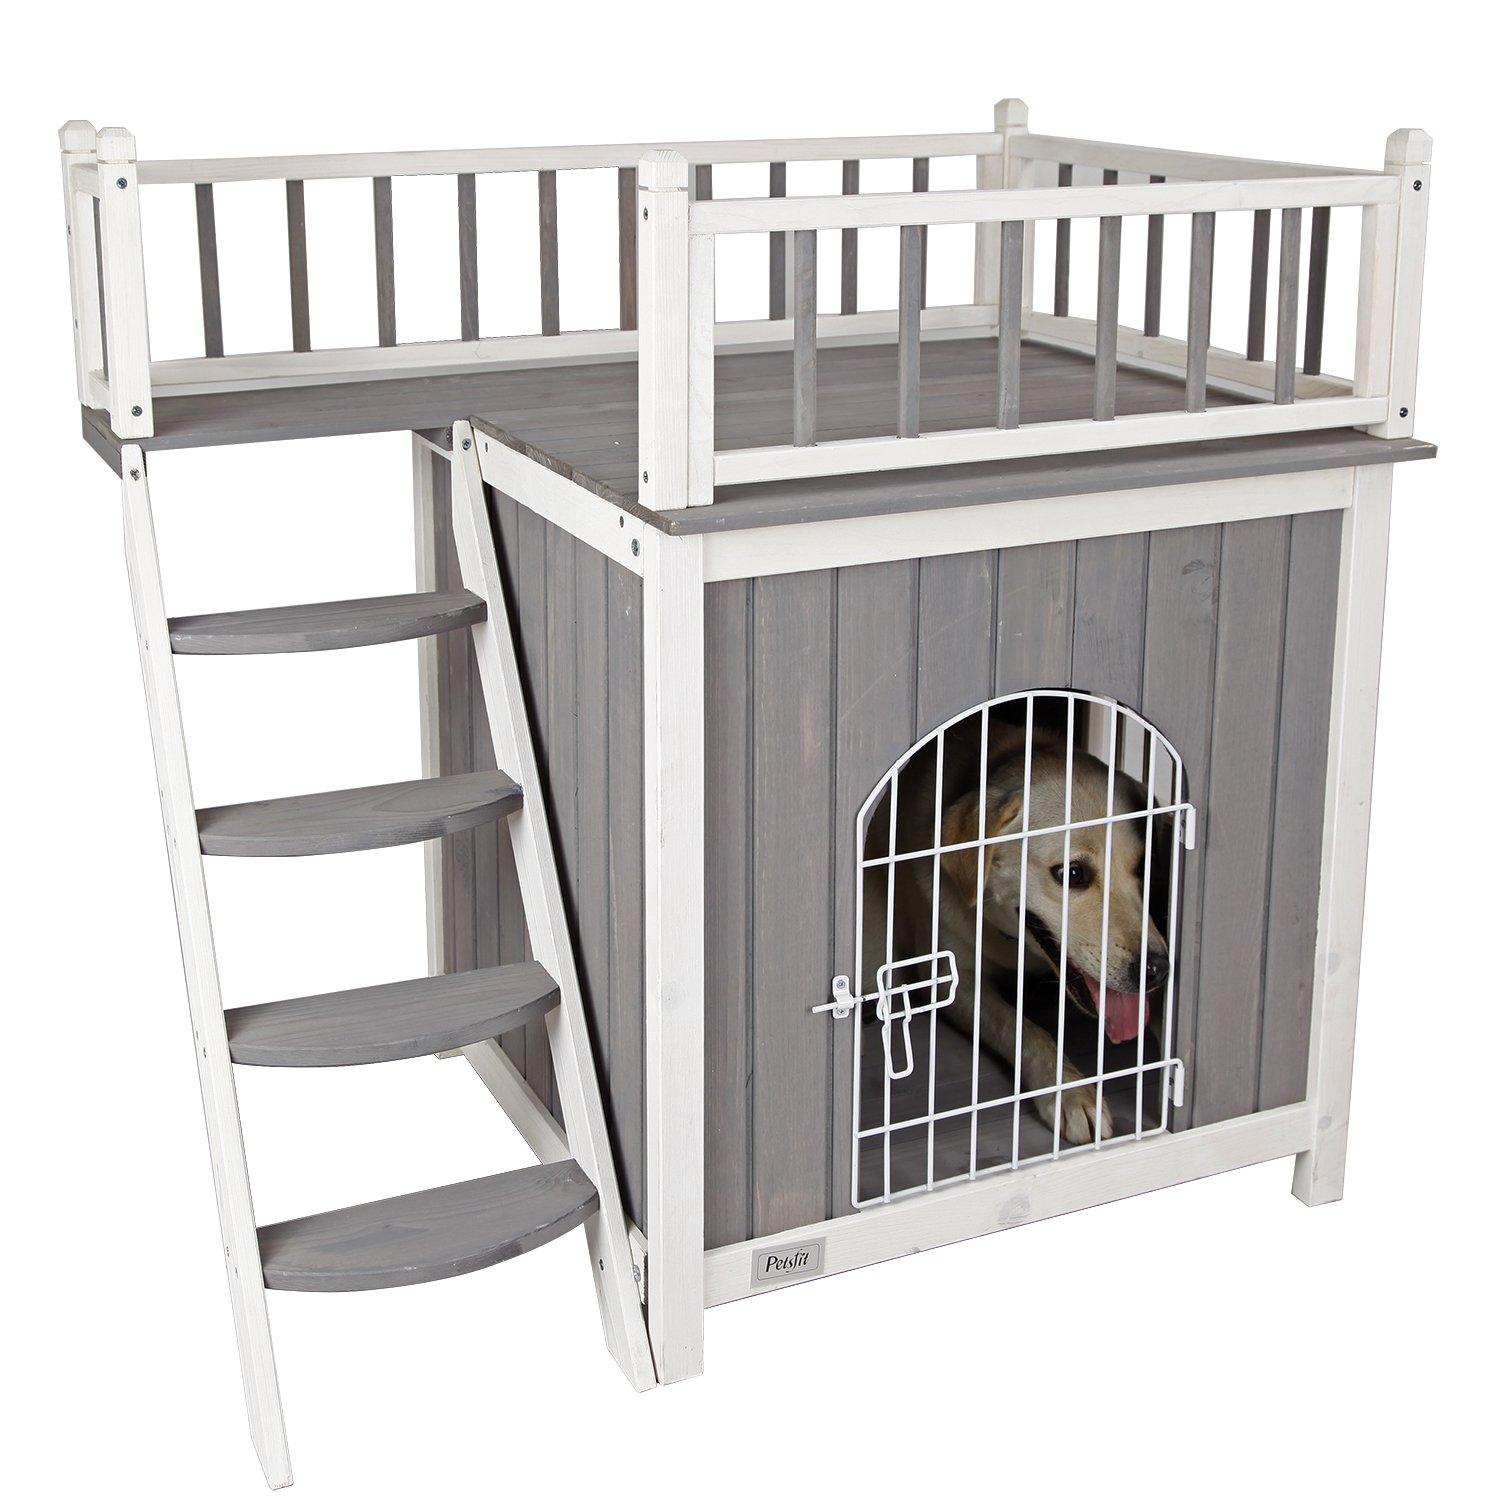 Petsfit 36''LX25''WX34''H Cat House For Indoor Use,Dog House,Wooden Indoor Dog House Cat Condo